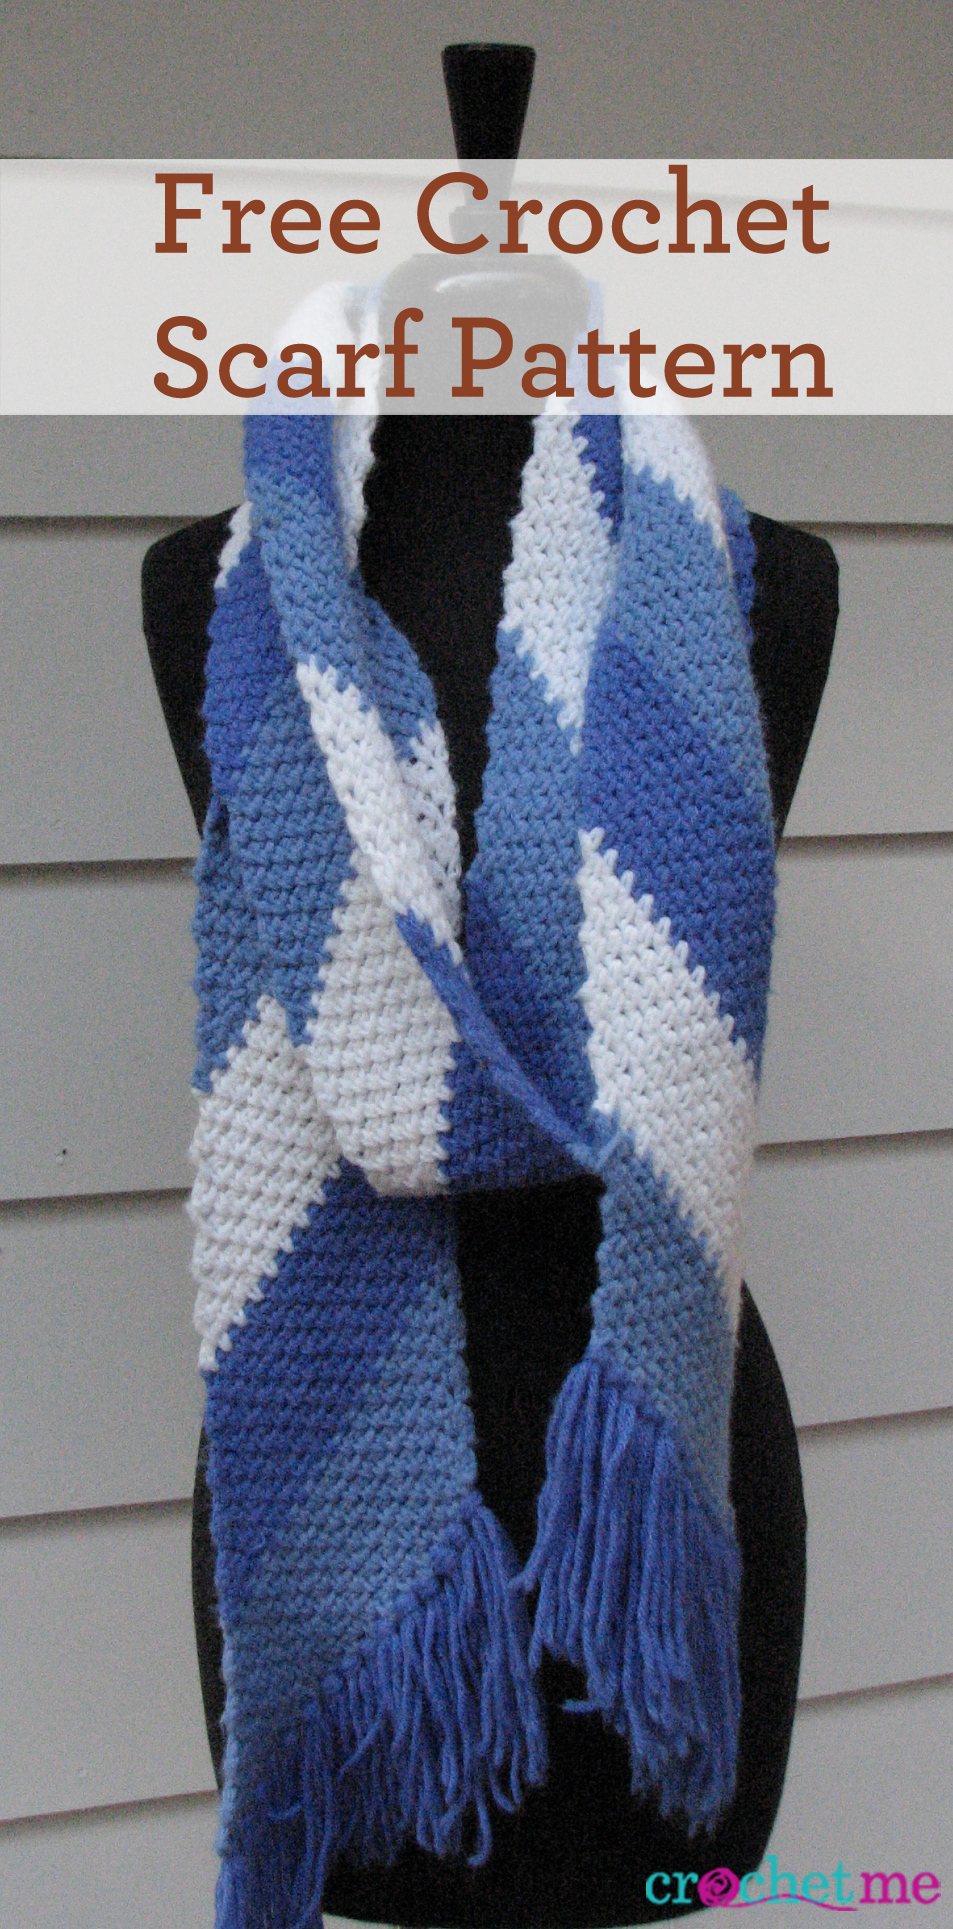 Free Easy Knitting Scarf Patterns For Beginners Free Crochet Simple Striped Scarf Pattern Interweave